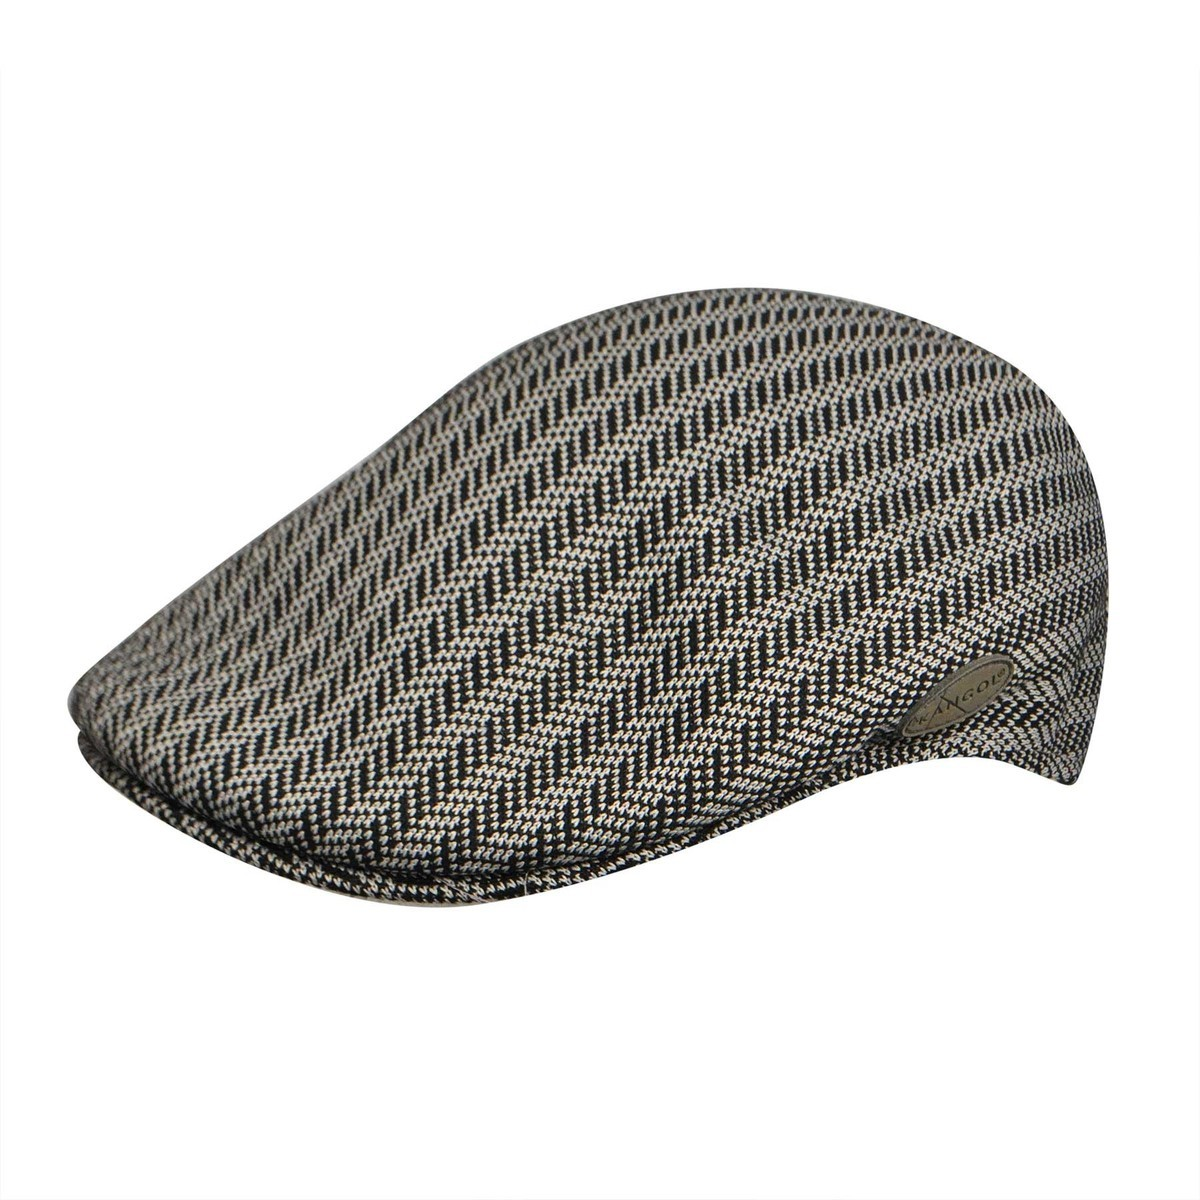 Kangol カンゴール Ardsley Herringbone 504 BLACK Ivy Caps & Flat Caps 帽子 BLACK